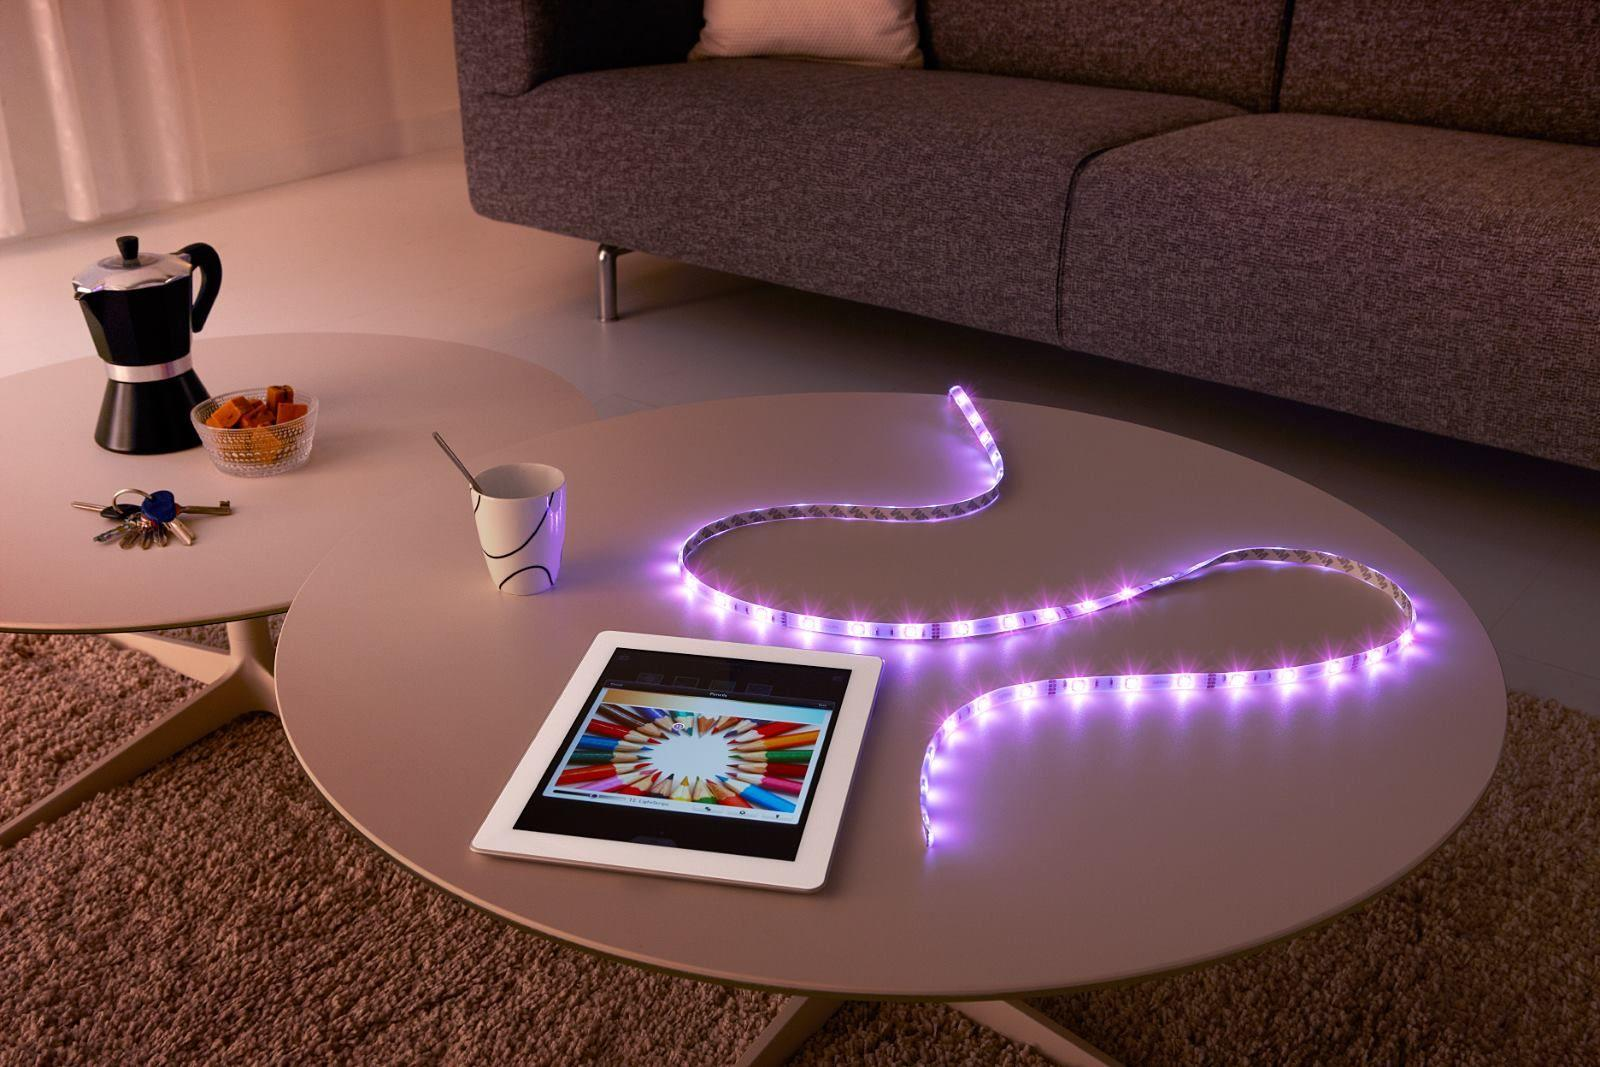 Lighting Gift Ideas Philips Friends of Hue 2m LED LightStrips